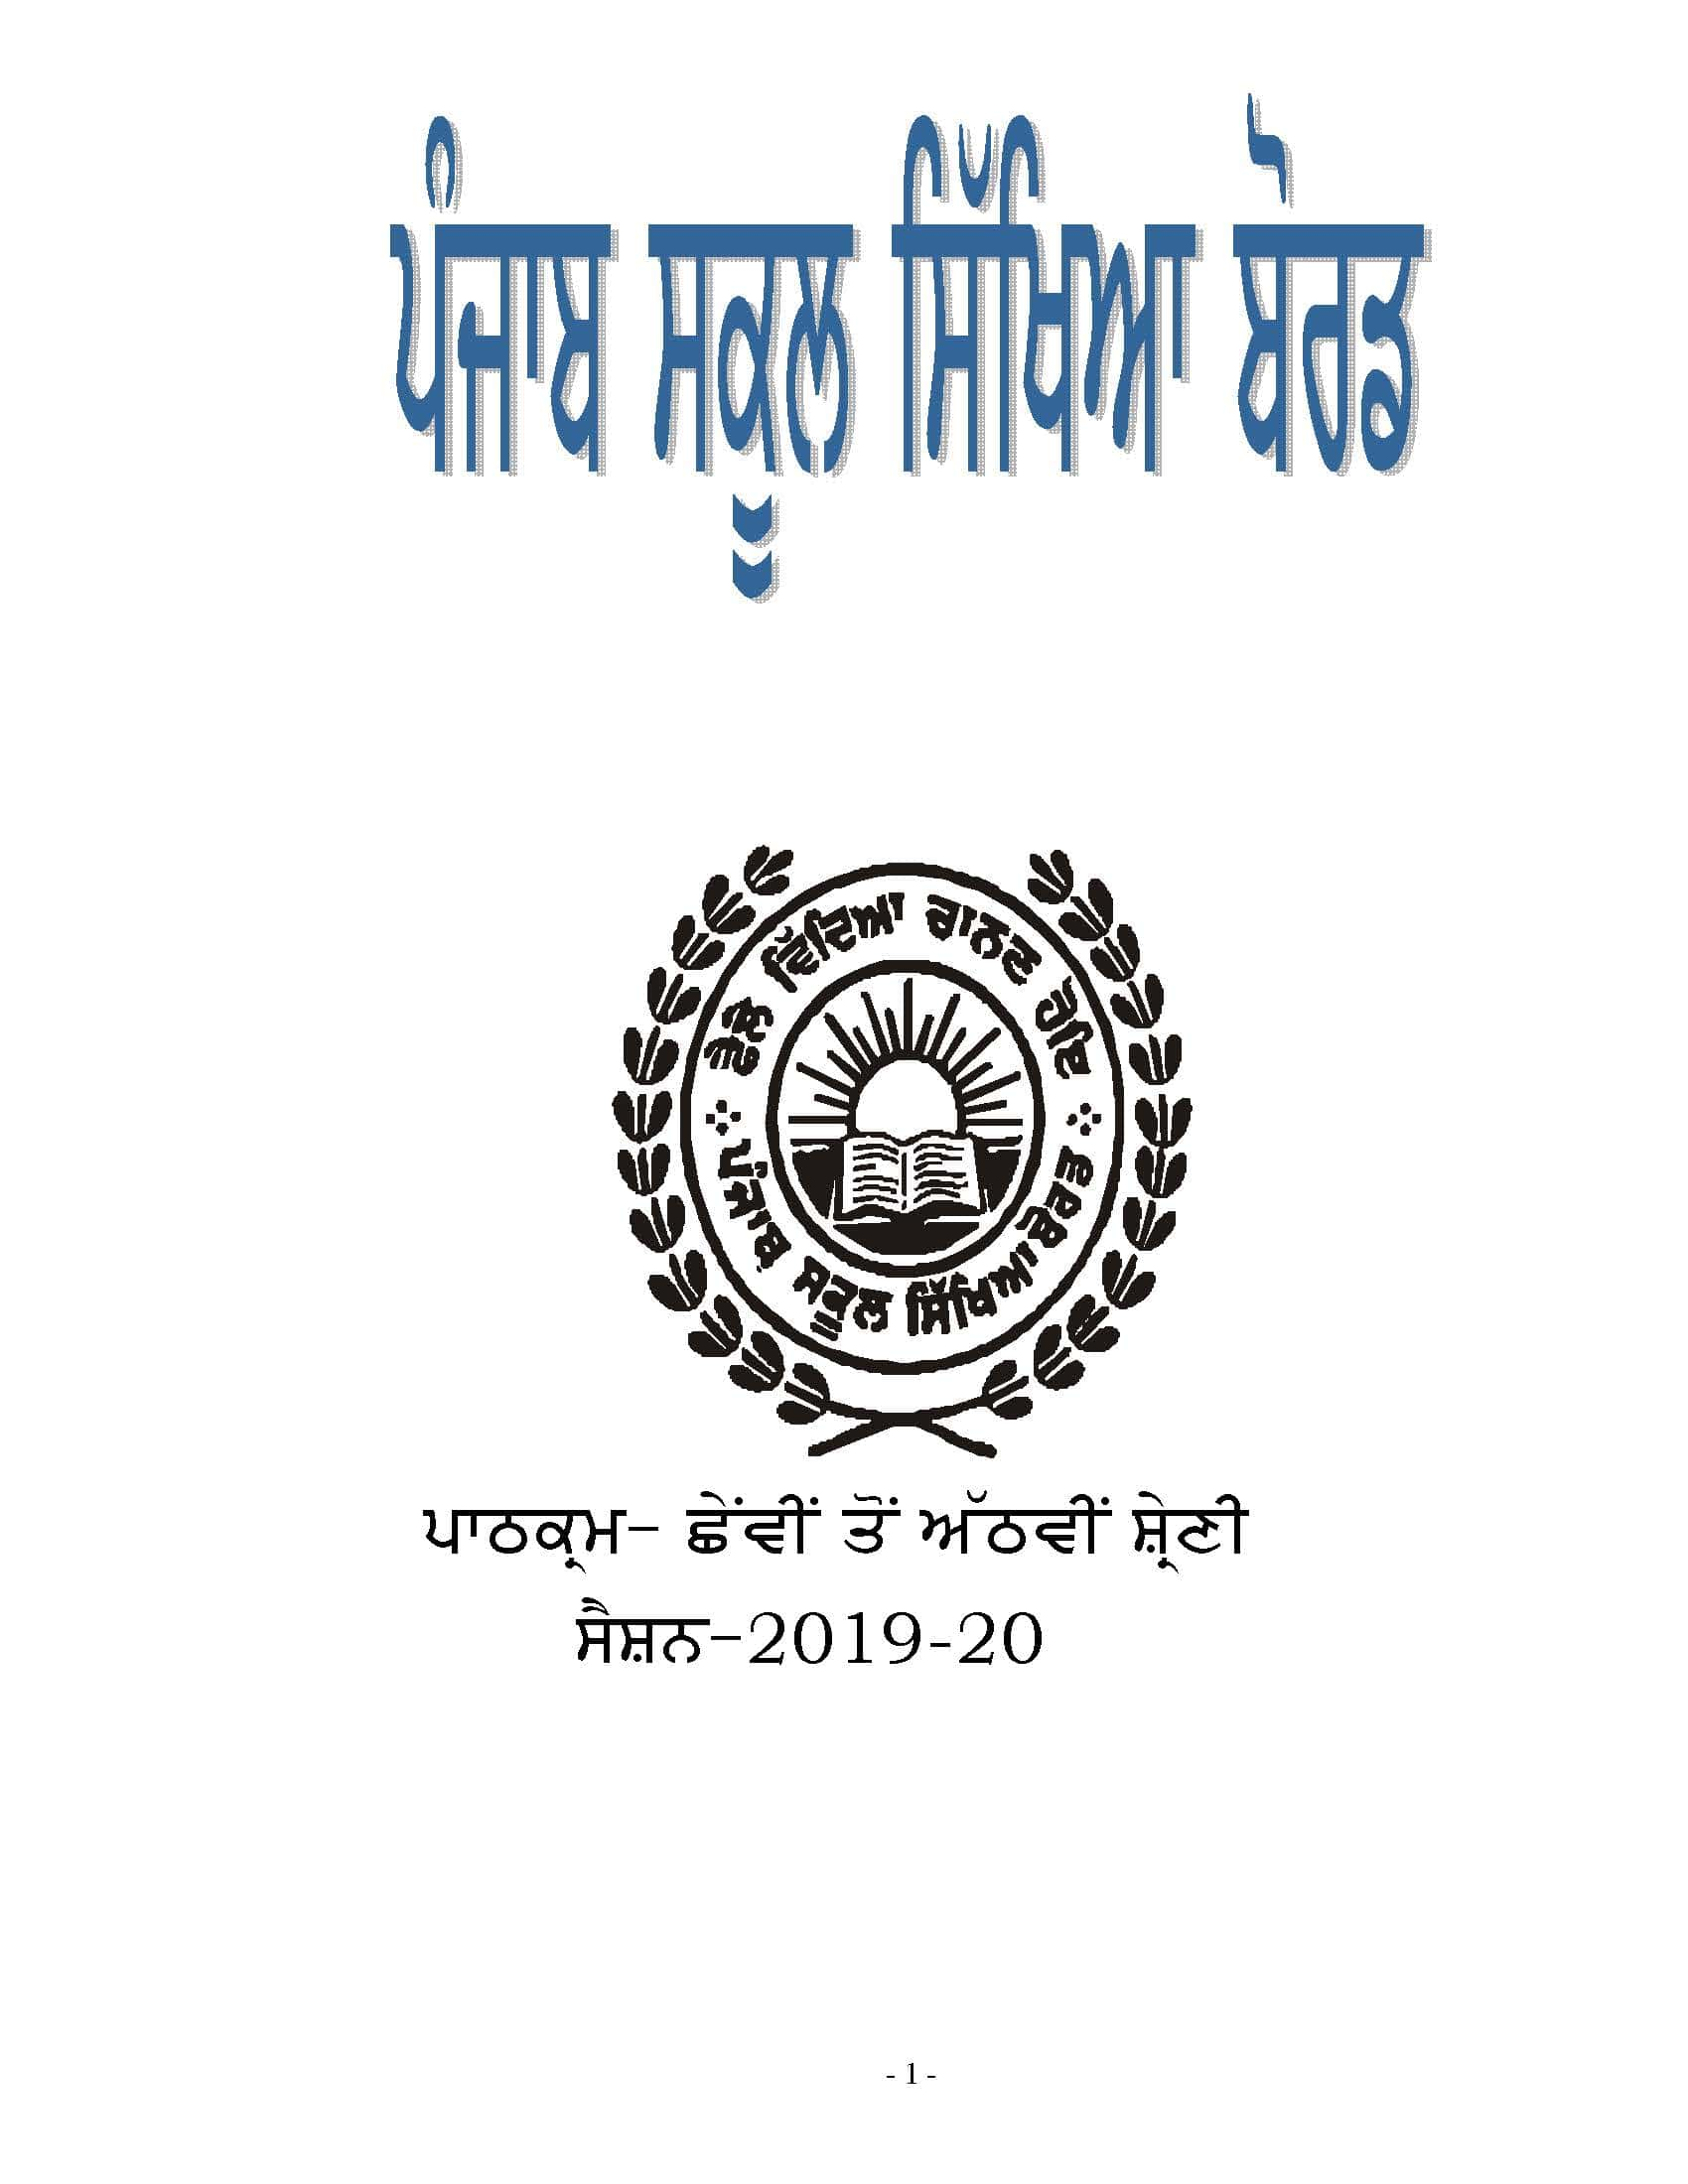 Syllabus from Academic Year 2019-20 of Punjab School Education Board